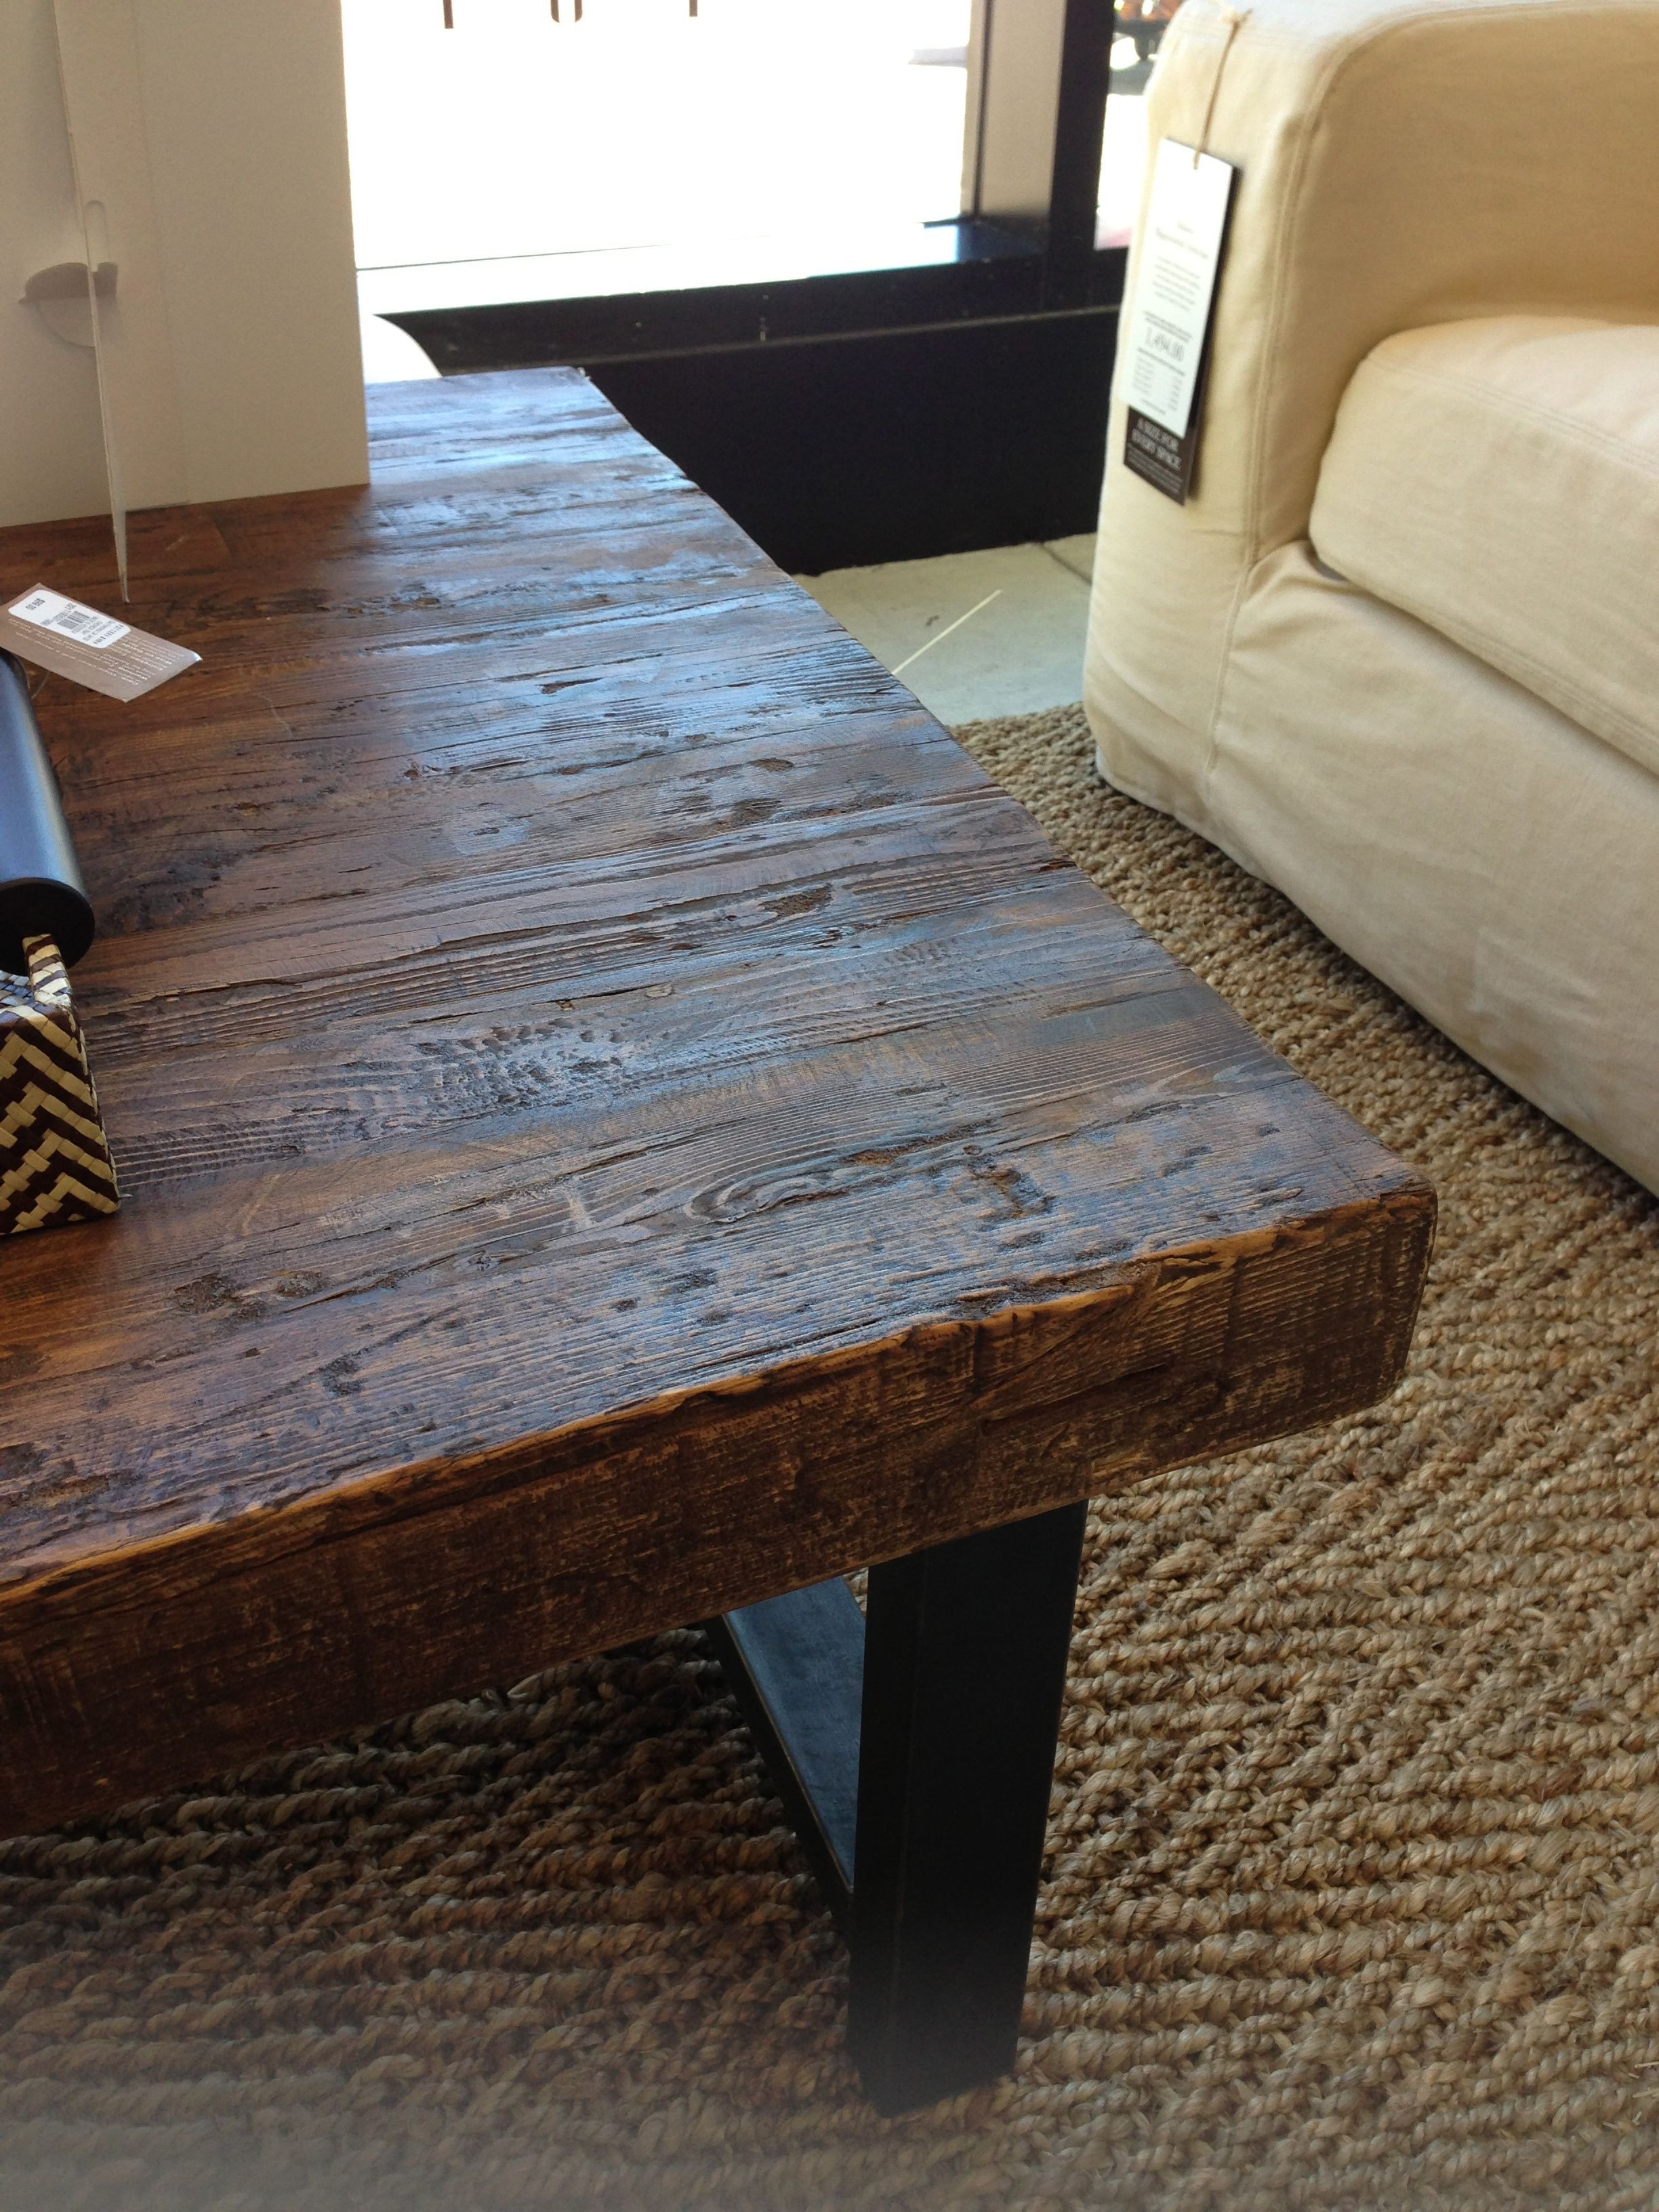 Griffin Reclaimed Wood Coffee Table Charleston Living Room Diy within sizing 2448 X 3264